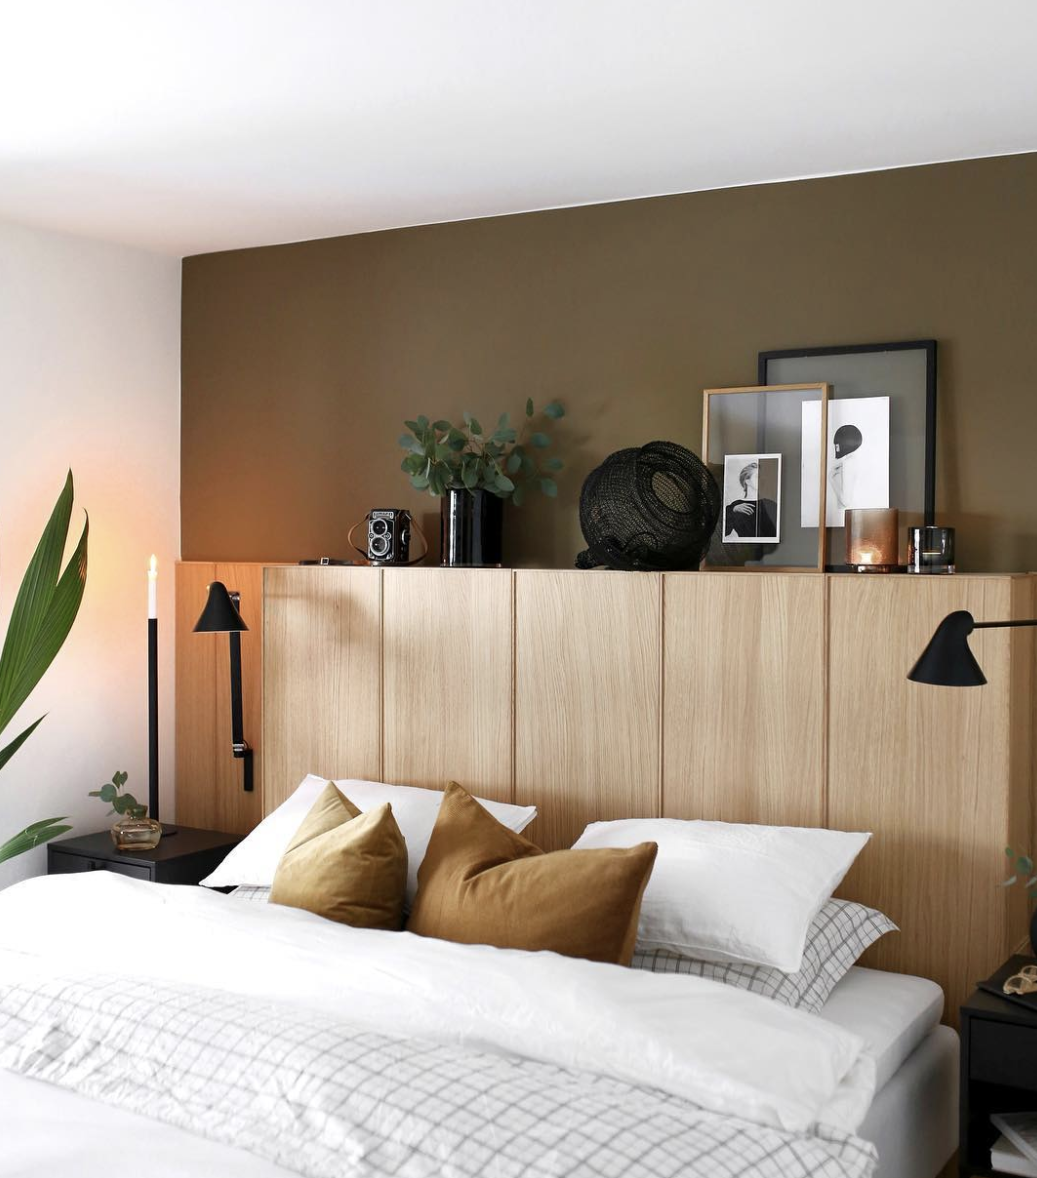 11 Ikea Bedroom Ideas Perfect For Small Spaces Hunker Small Space Bedroom Home Decor Bedroom Ikea Bedroom